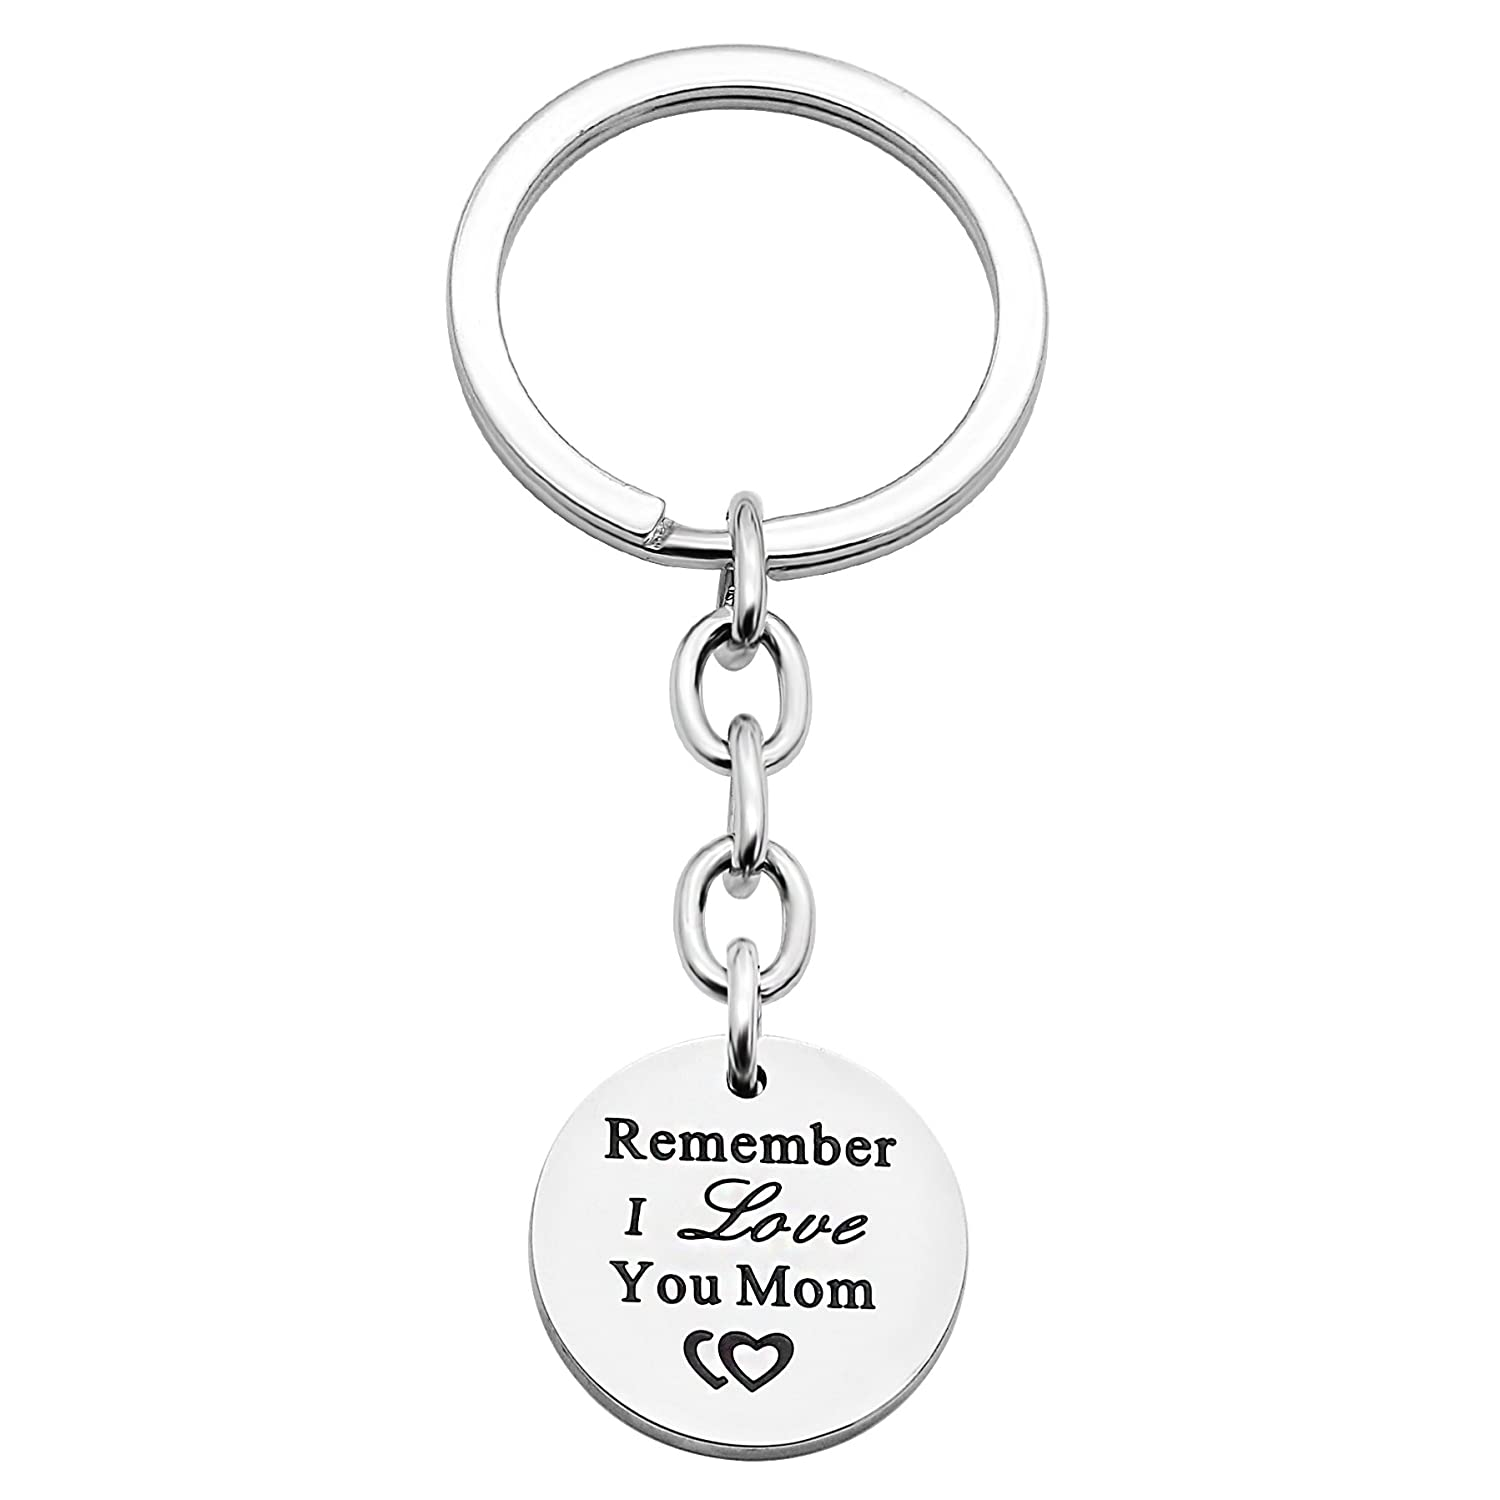 Mom Gift Key Chain Remember I Love You Mom for Family Women Stainless Steel Mothers Day Christmas lauhonmin